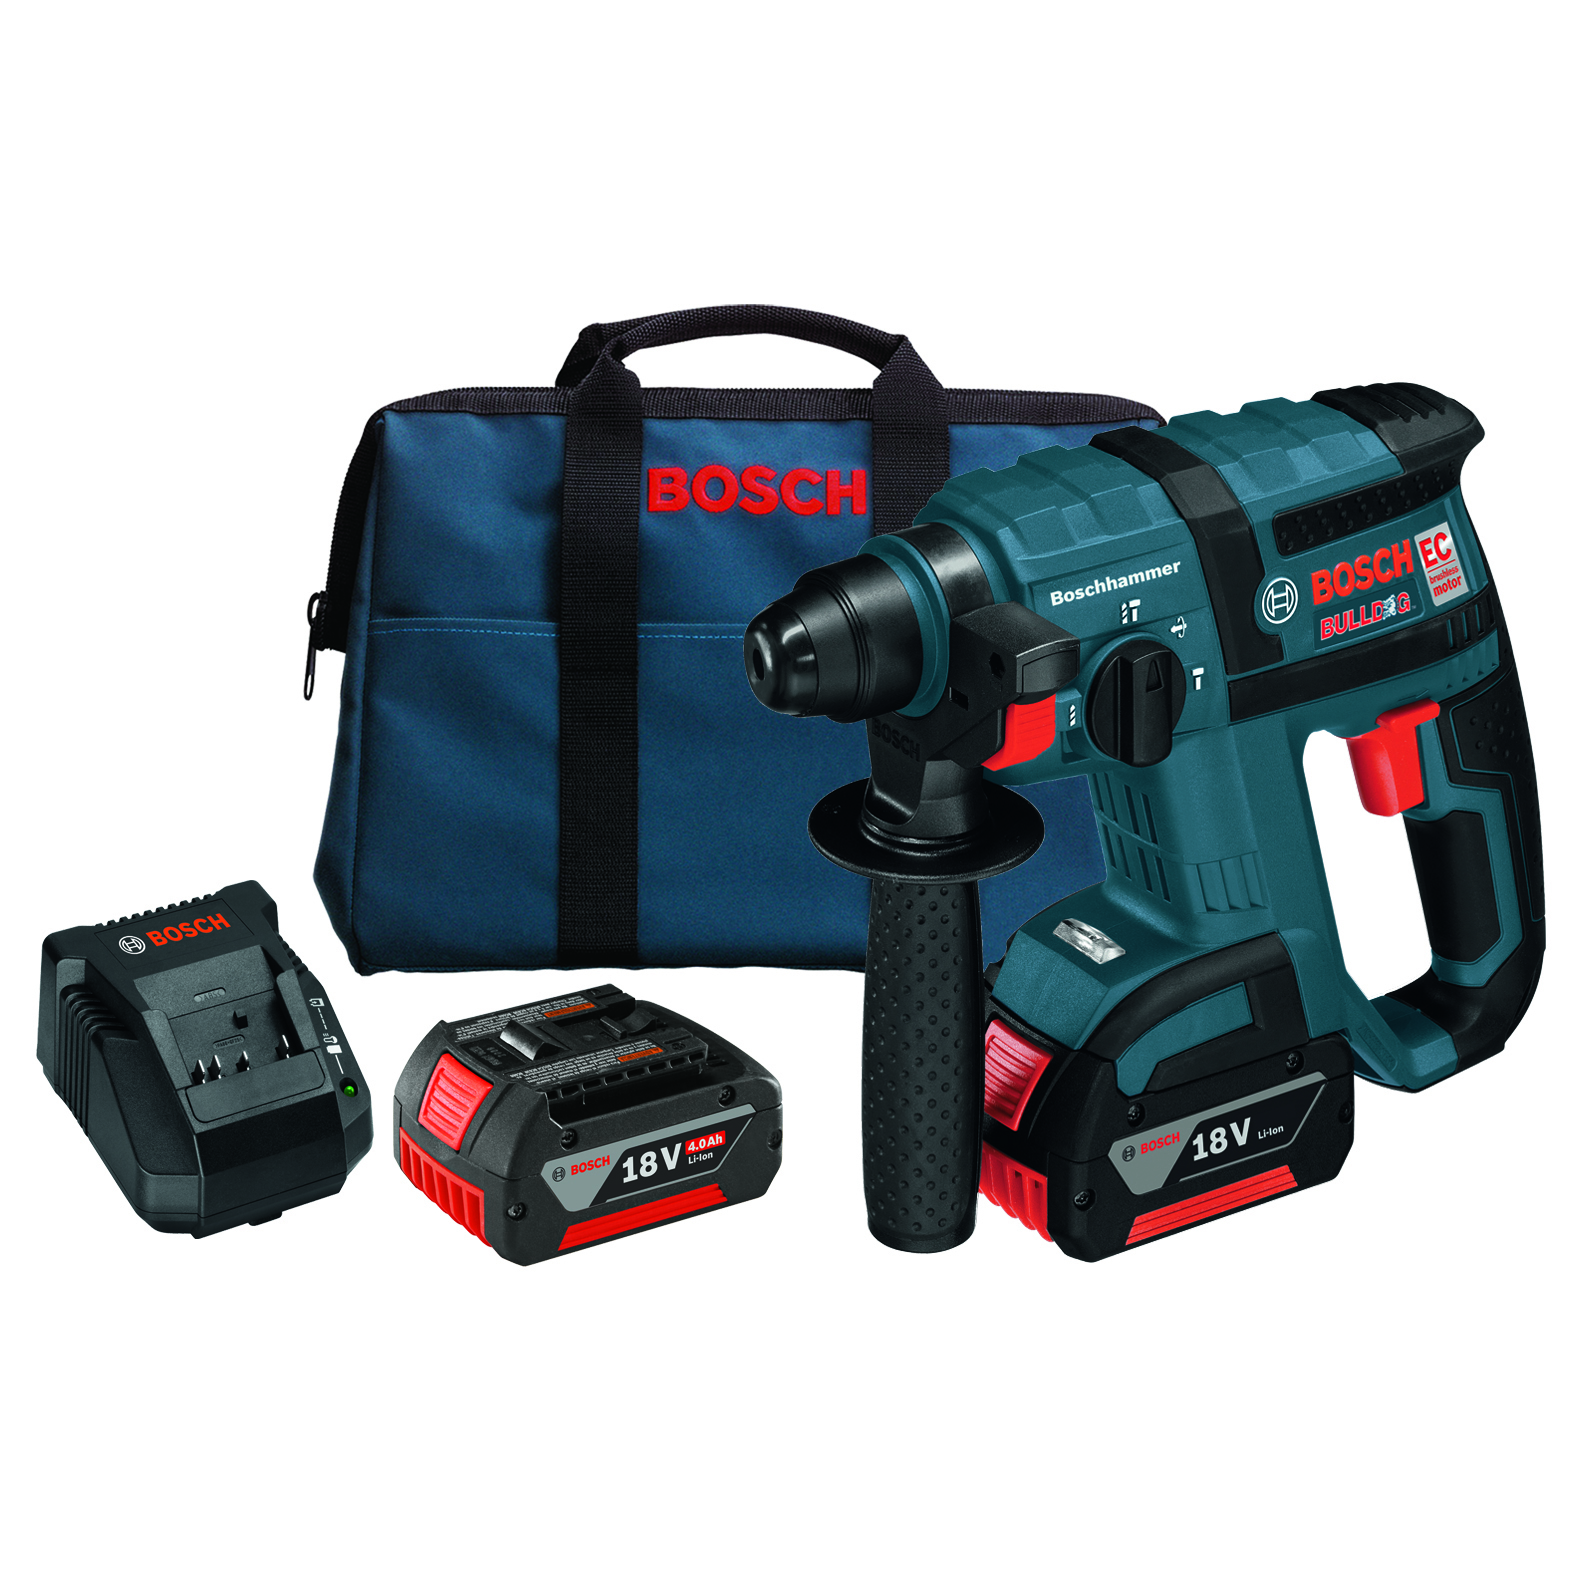 bosch rhh181 01 18 volt 3 4 inch sds plus pneumatic mechanism rotary hammer kit ebay. Black Bedroom Furniture Sets. Home Design Ideas